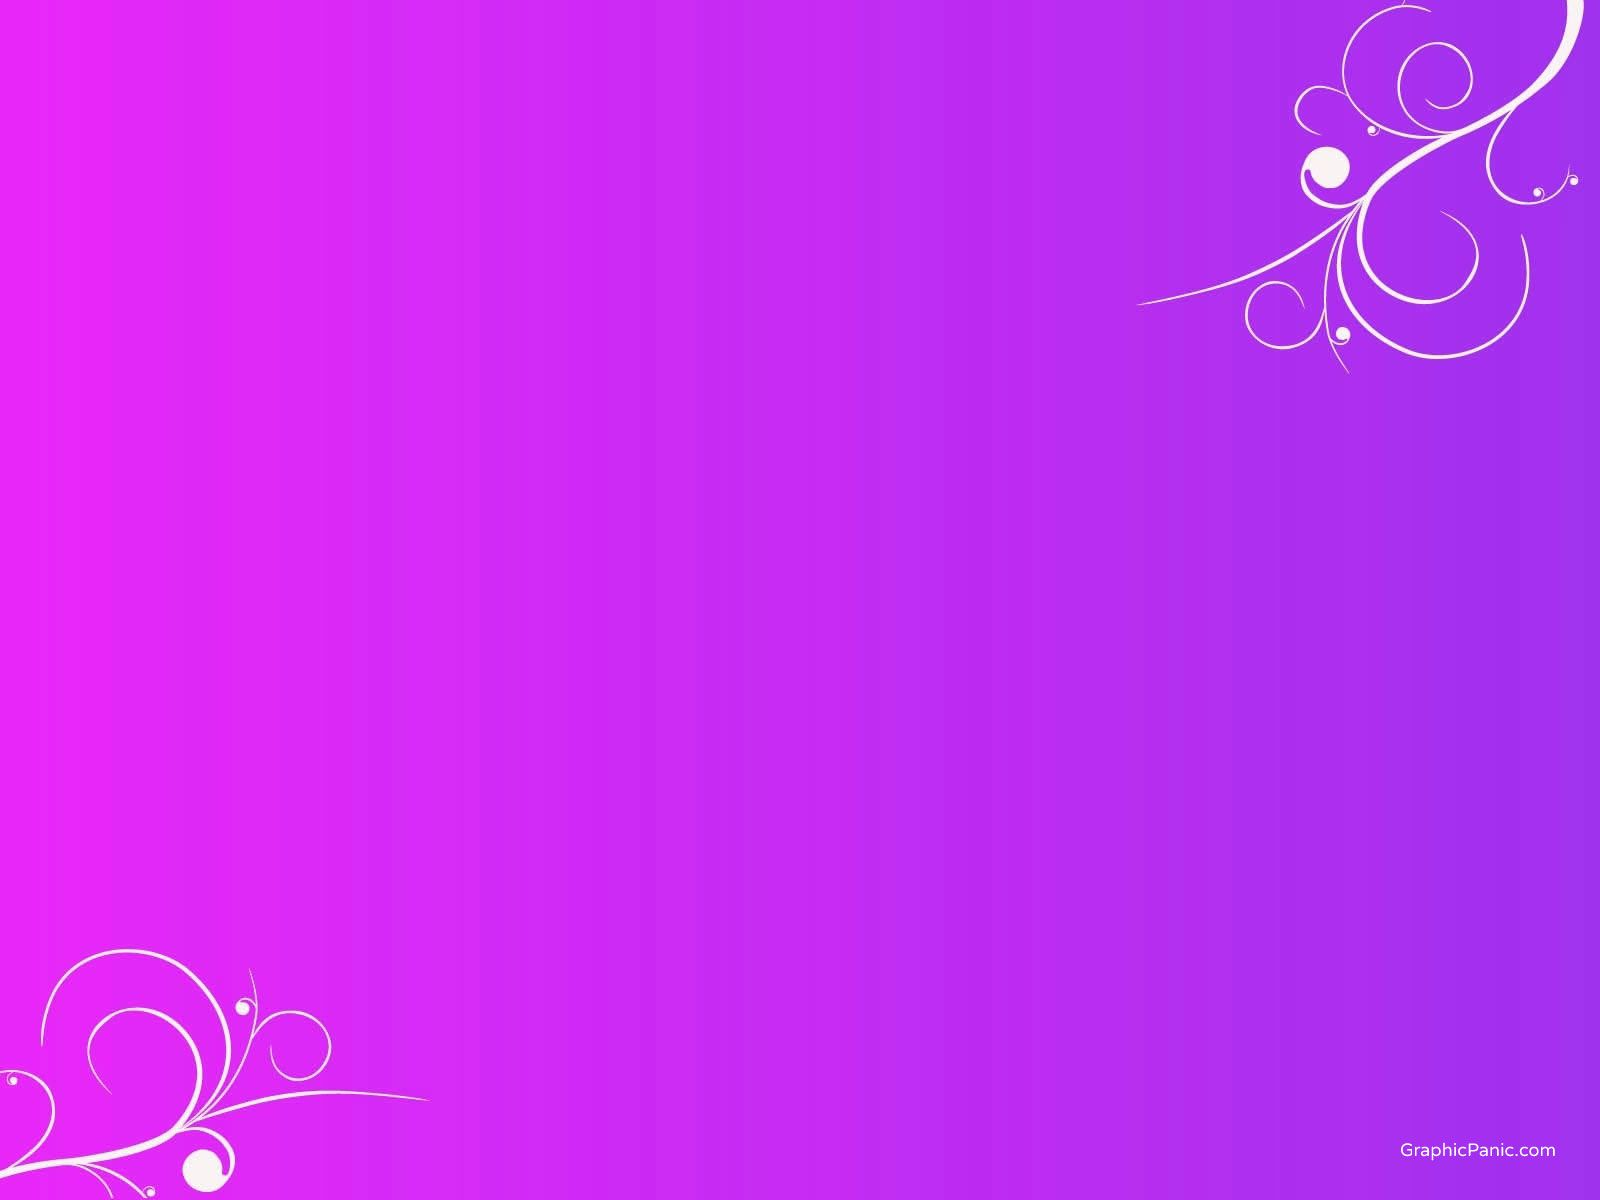 purple flower backgrounds graphicpaniccom offers you